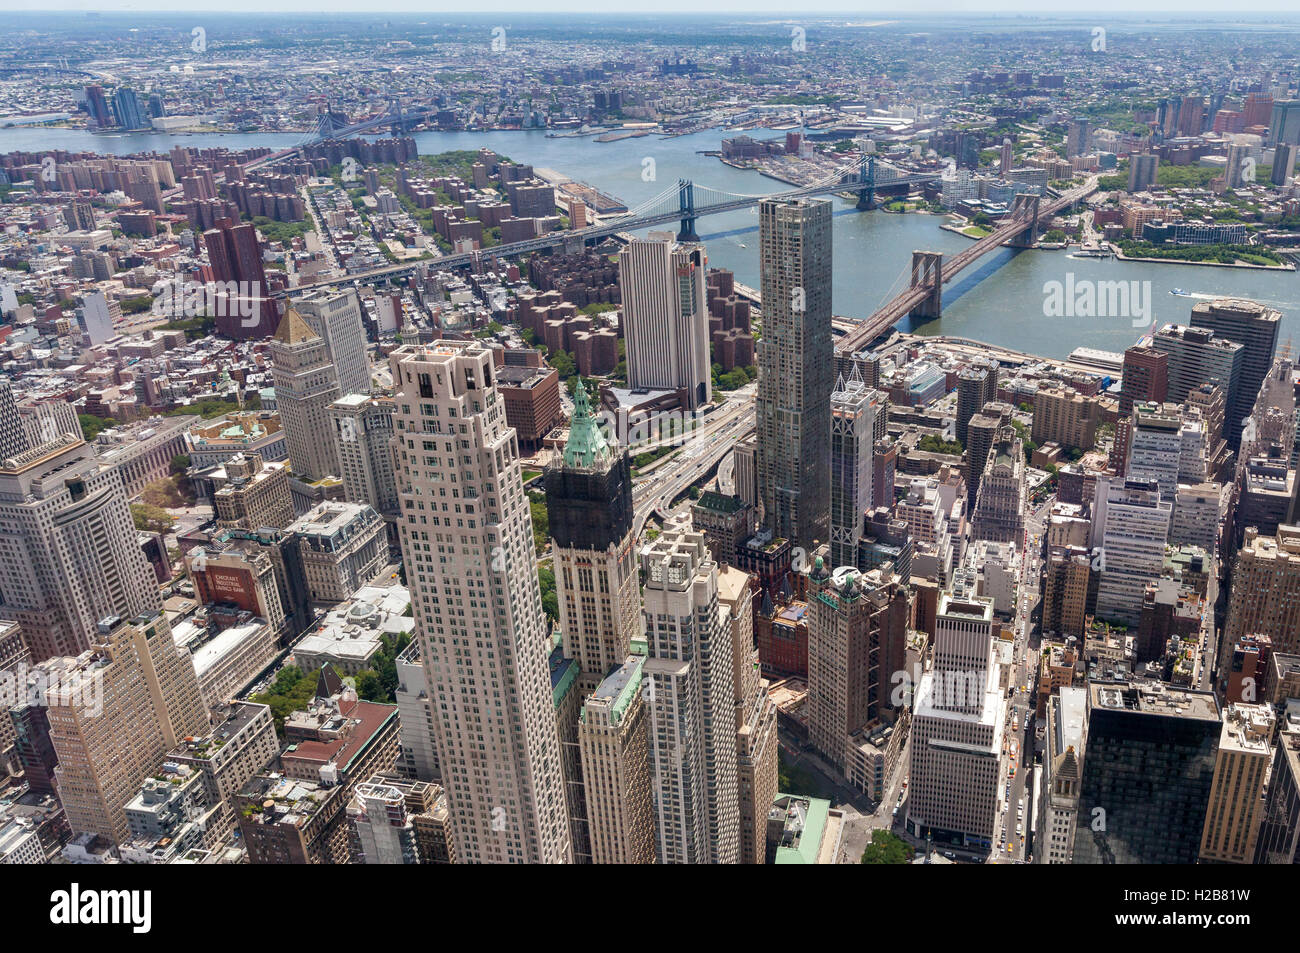 An aerial view of New York City. - Stock Image